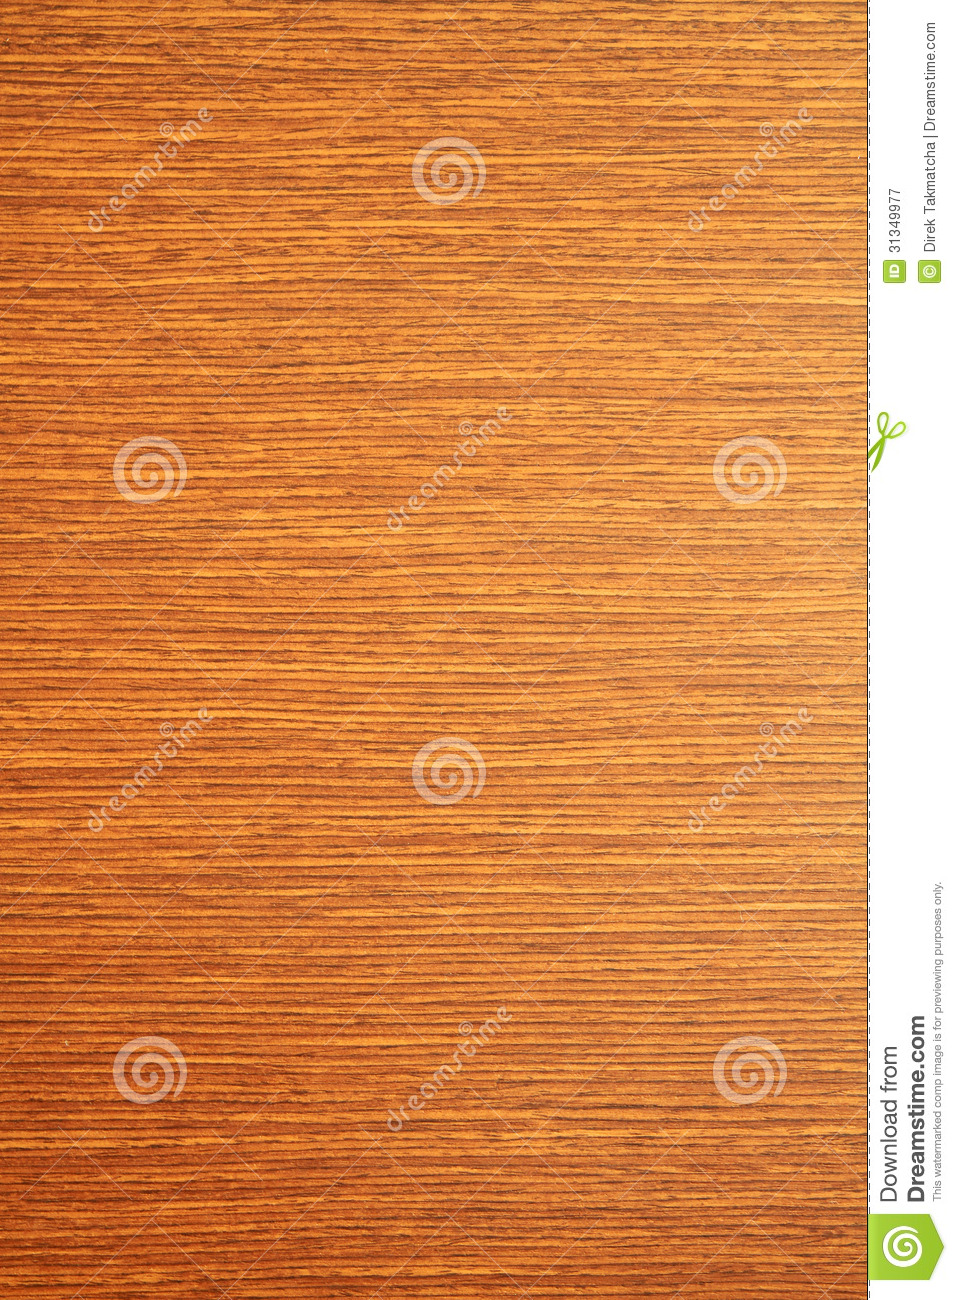 Veneer Wood Texture For Interior Royalty Free Stock Photography ...